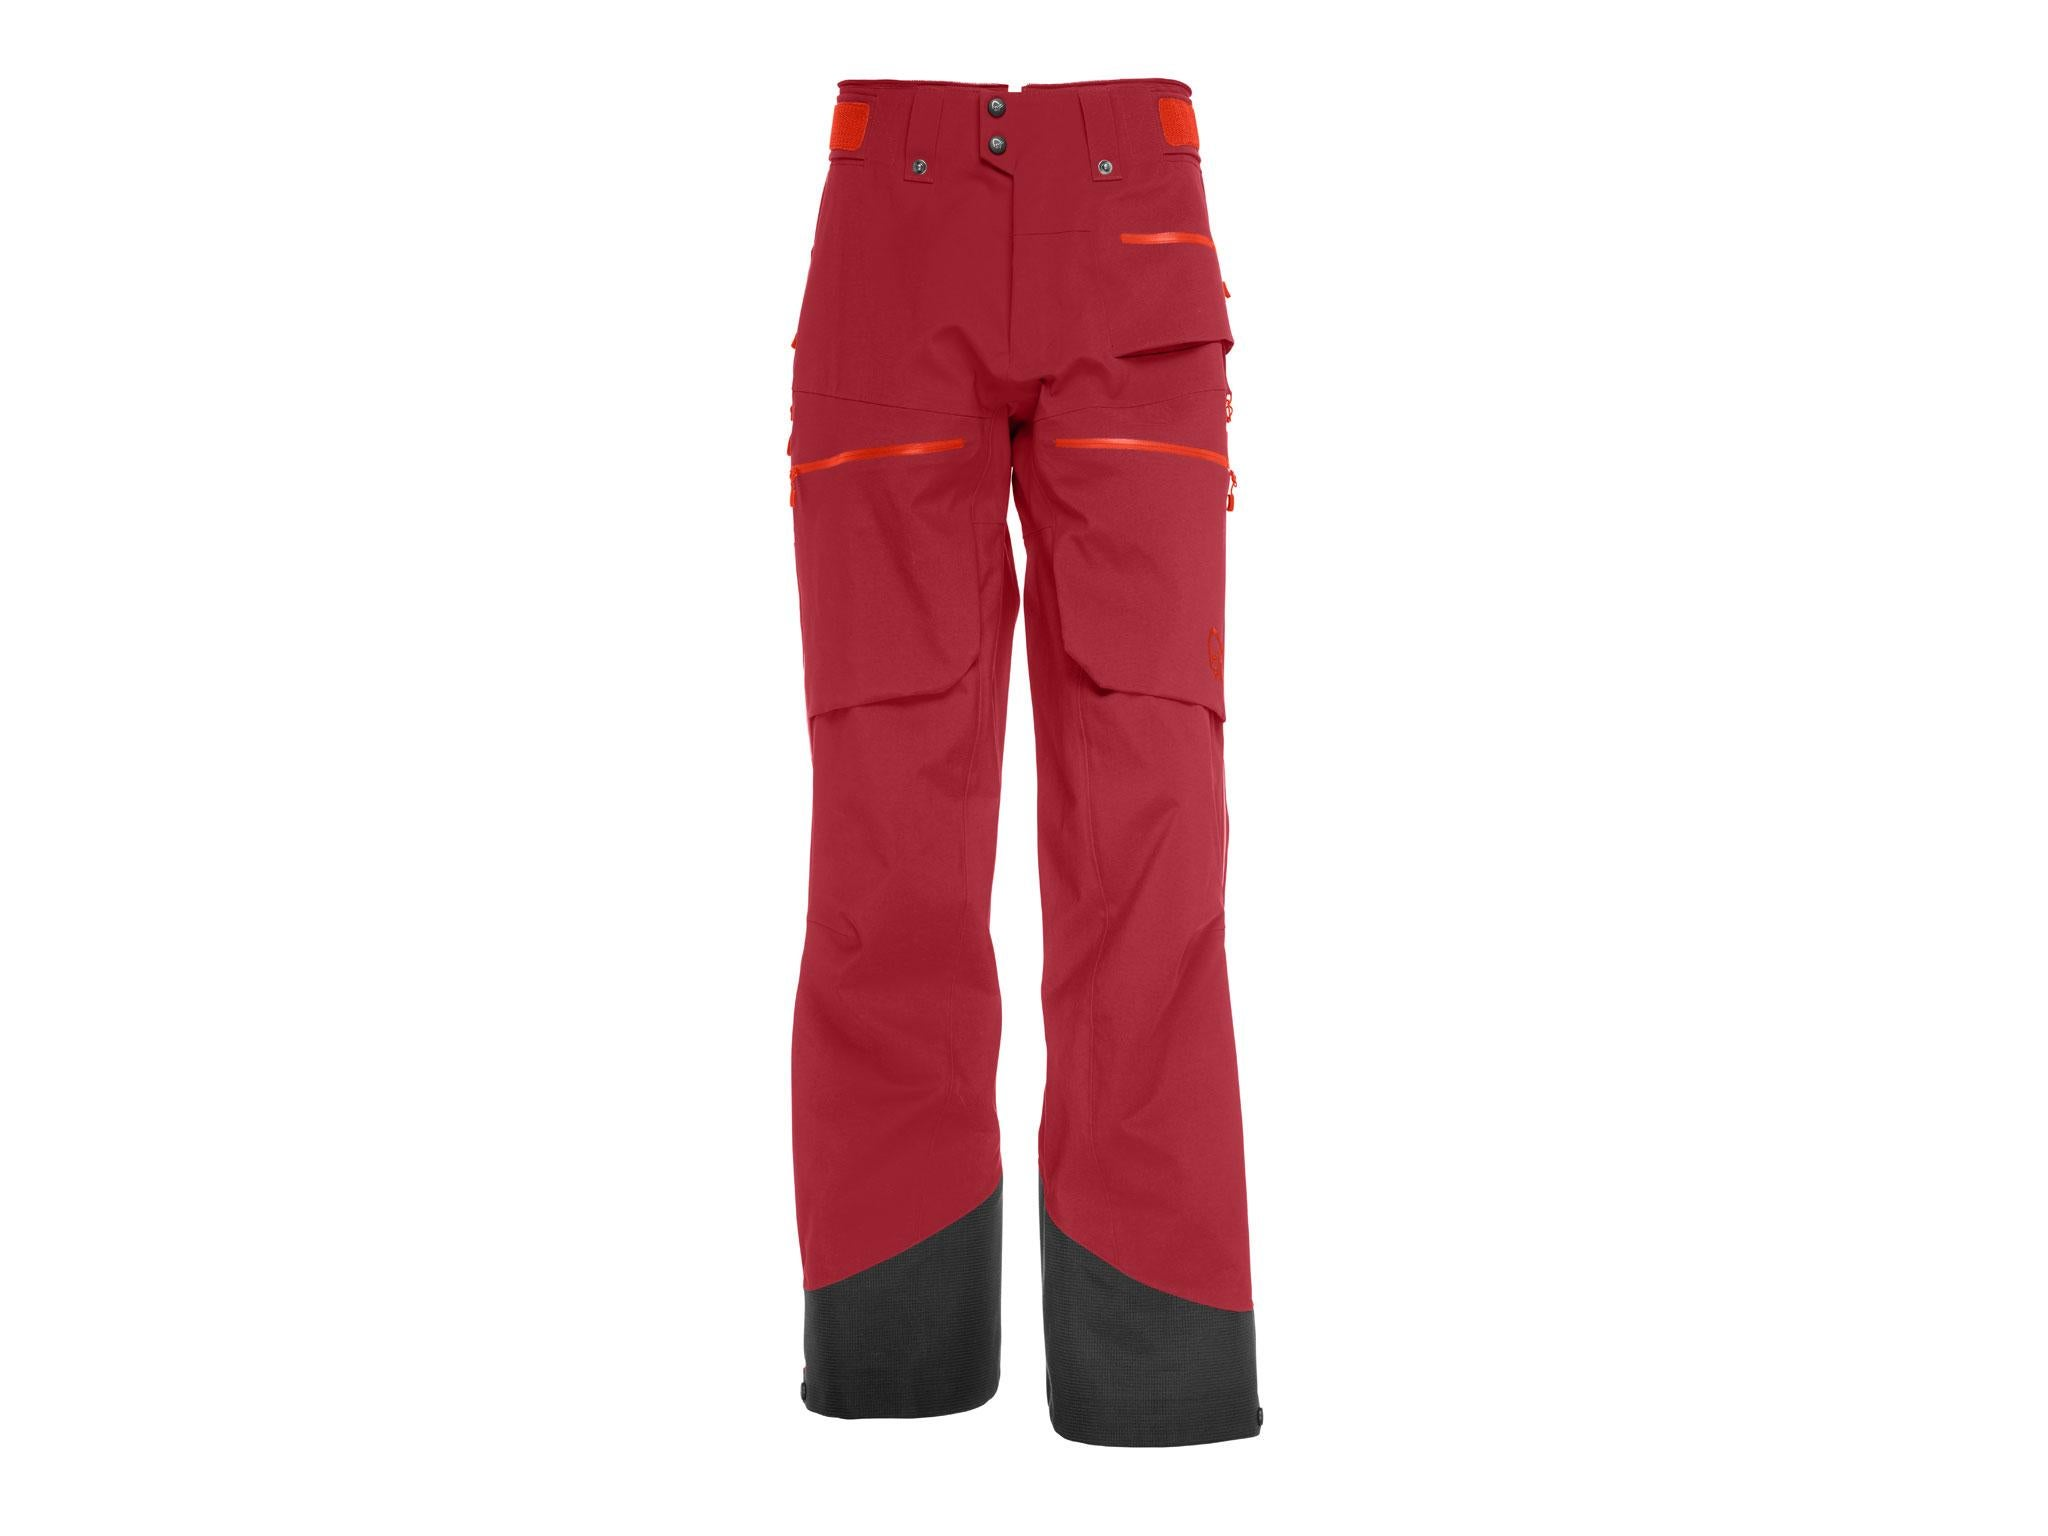 ae93d4345 13 best men's ski and snowboard pants | The Independent